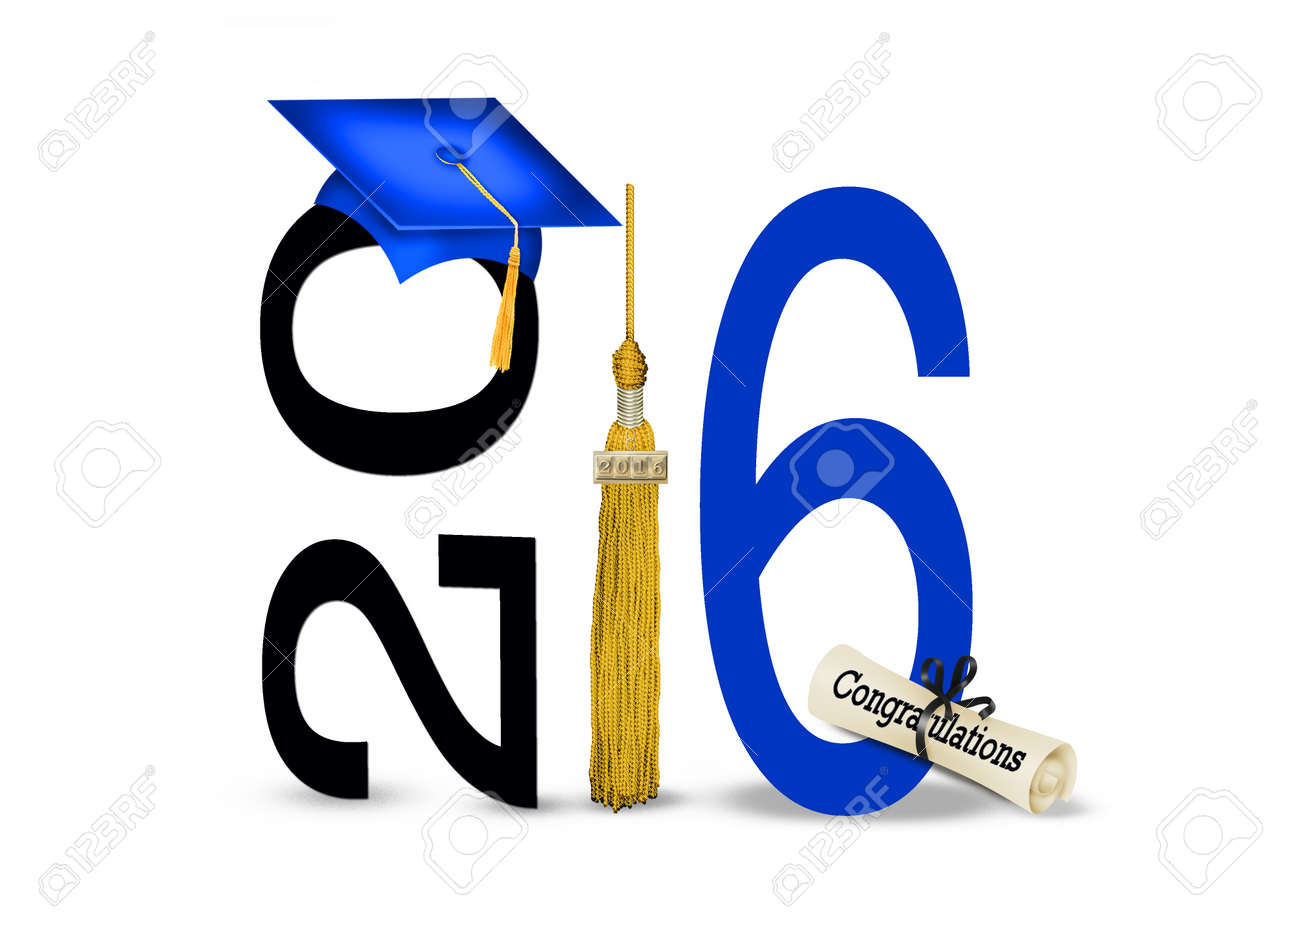 blue cap and gold tassel for class of 2016 Stock Photo - 51142010